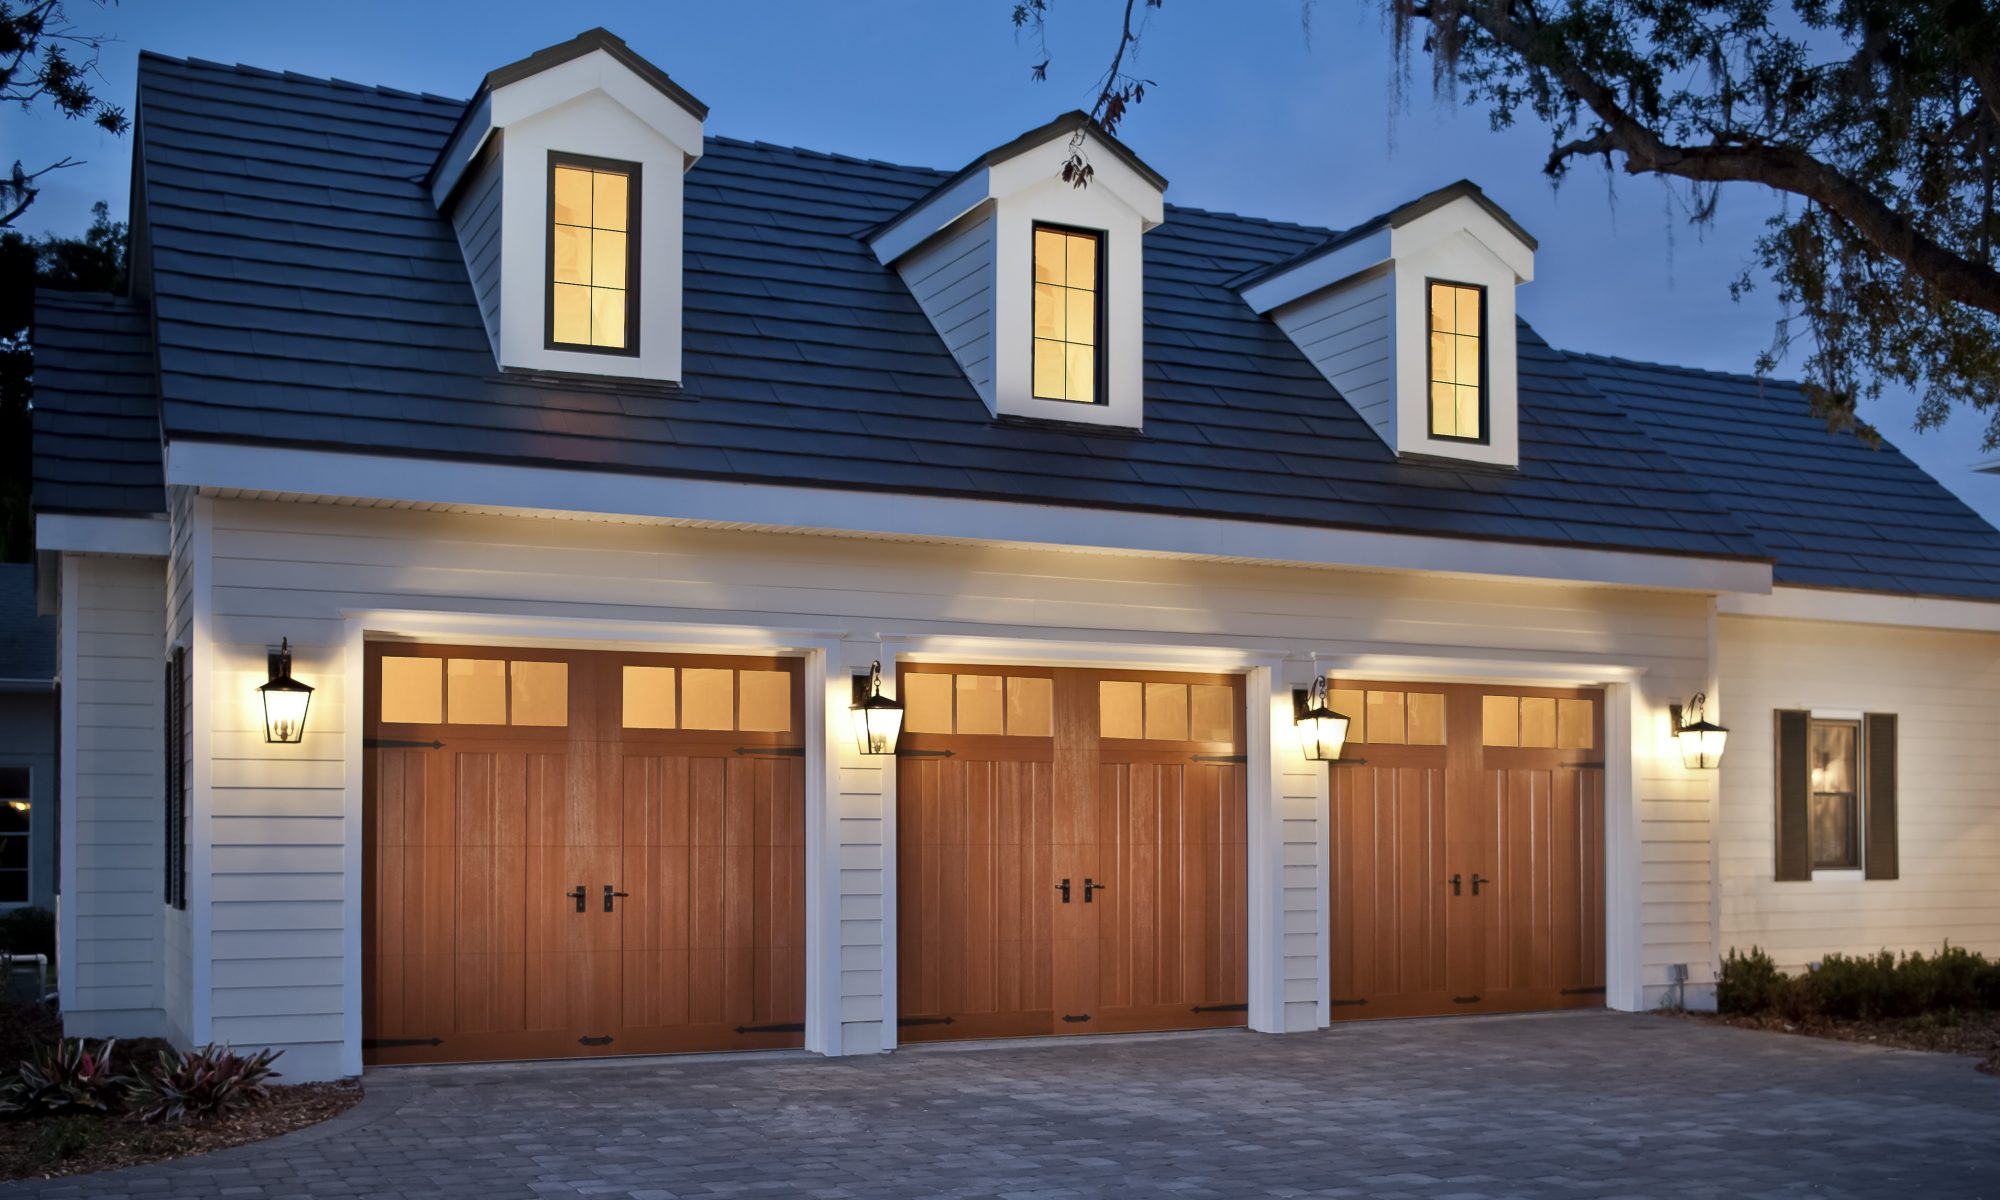 Charmant Garage Doors Melbourne, FL | Garage Door Repair Merrit Island FL | Fix  Garage Door Spring ...